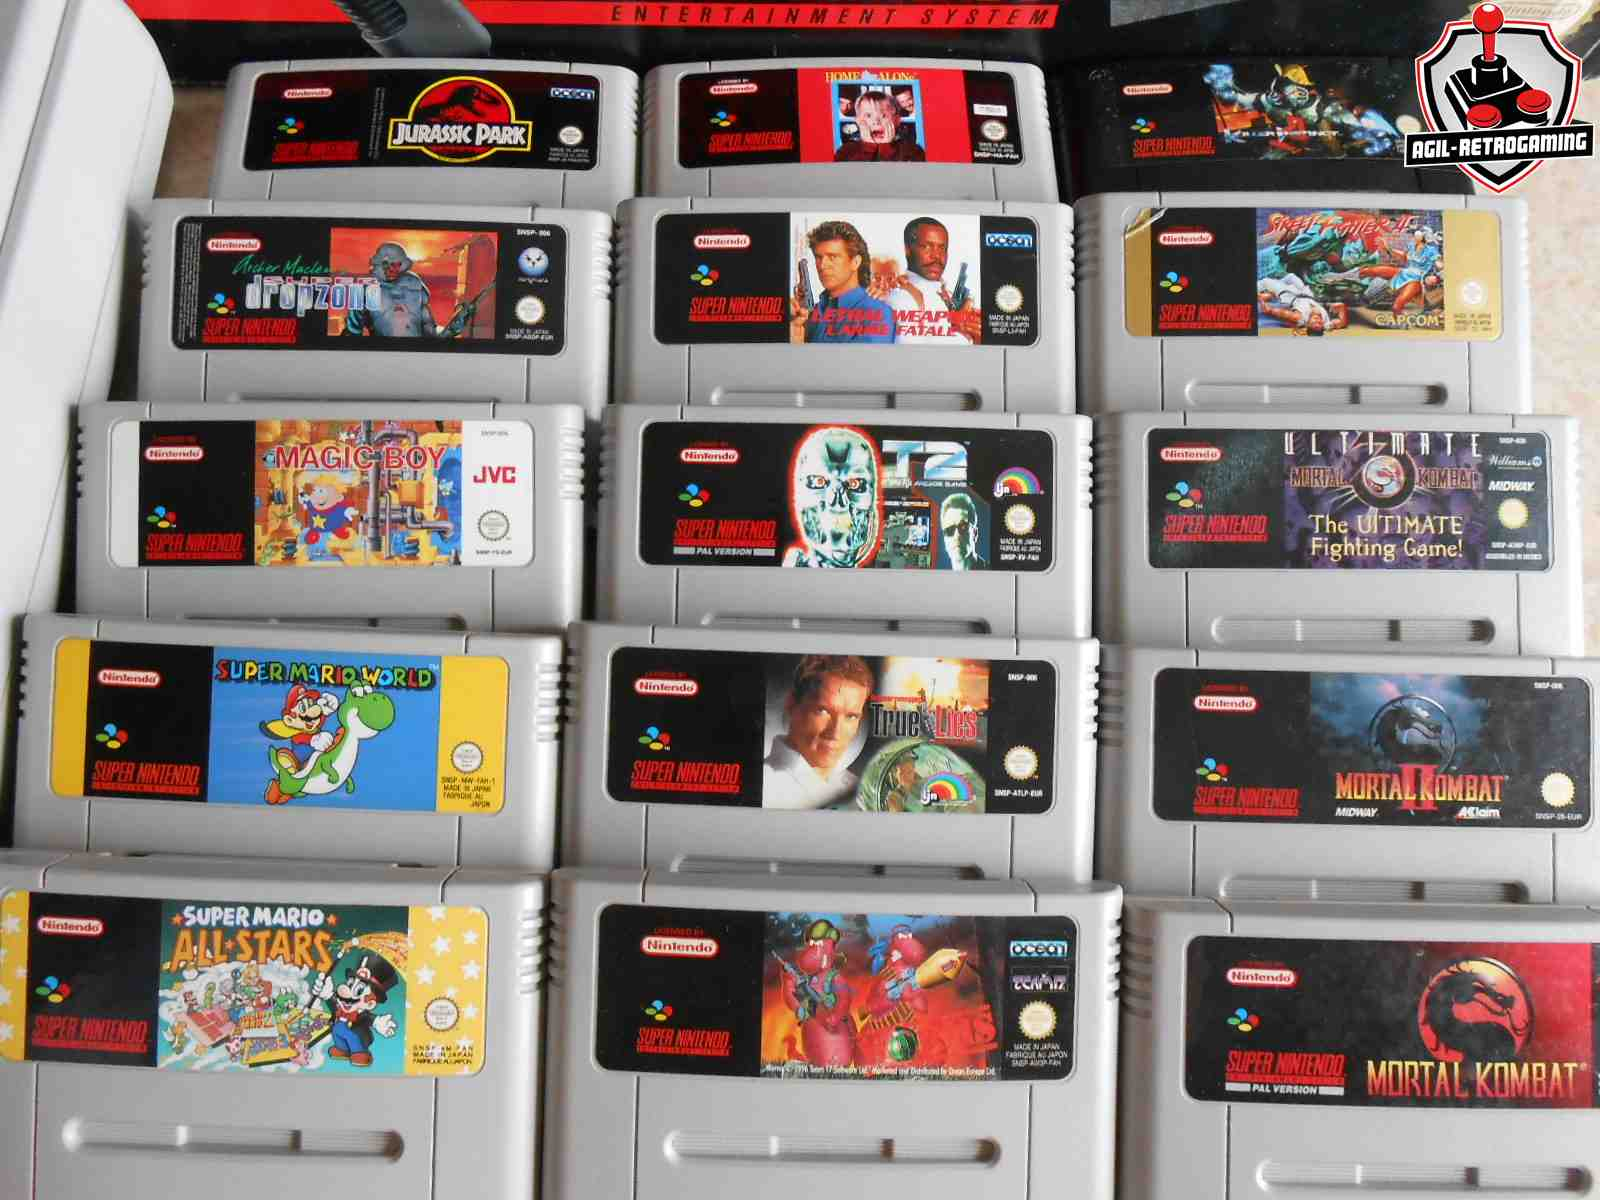 arrivage de jeux et consoles super nes blog agil retrogaming. Black Bedroom Furniture Sets. Home Design Ideas